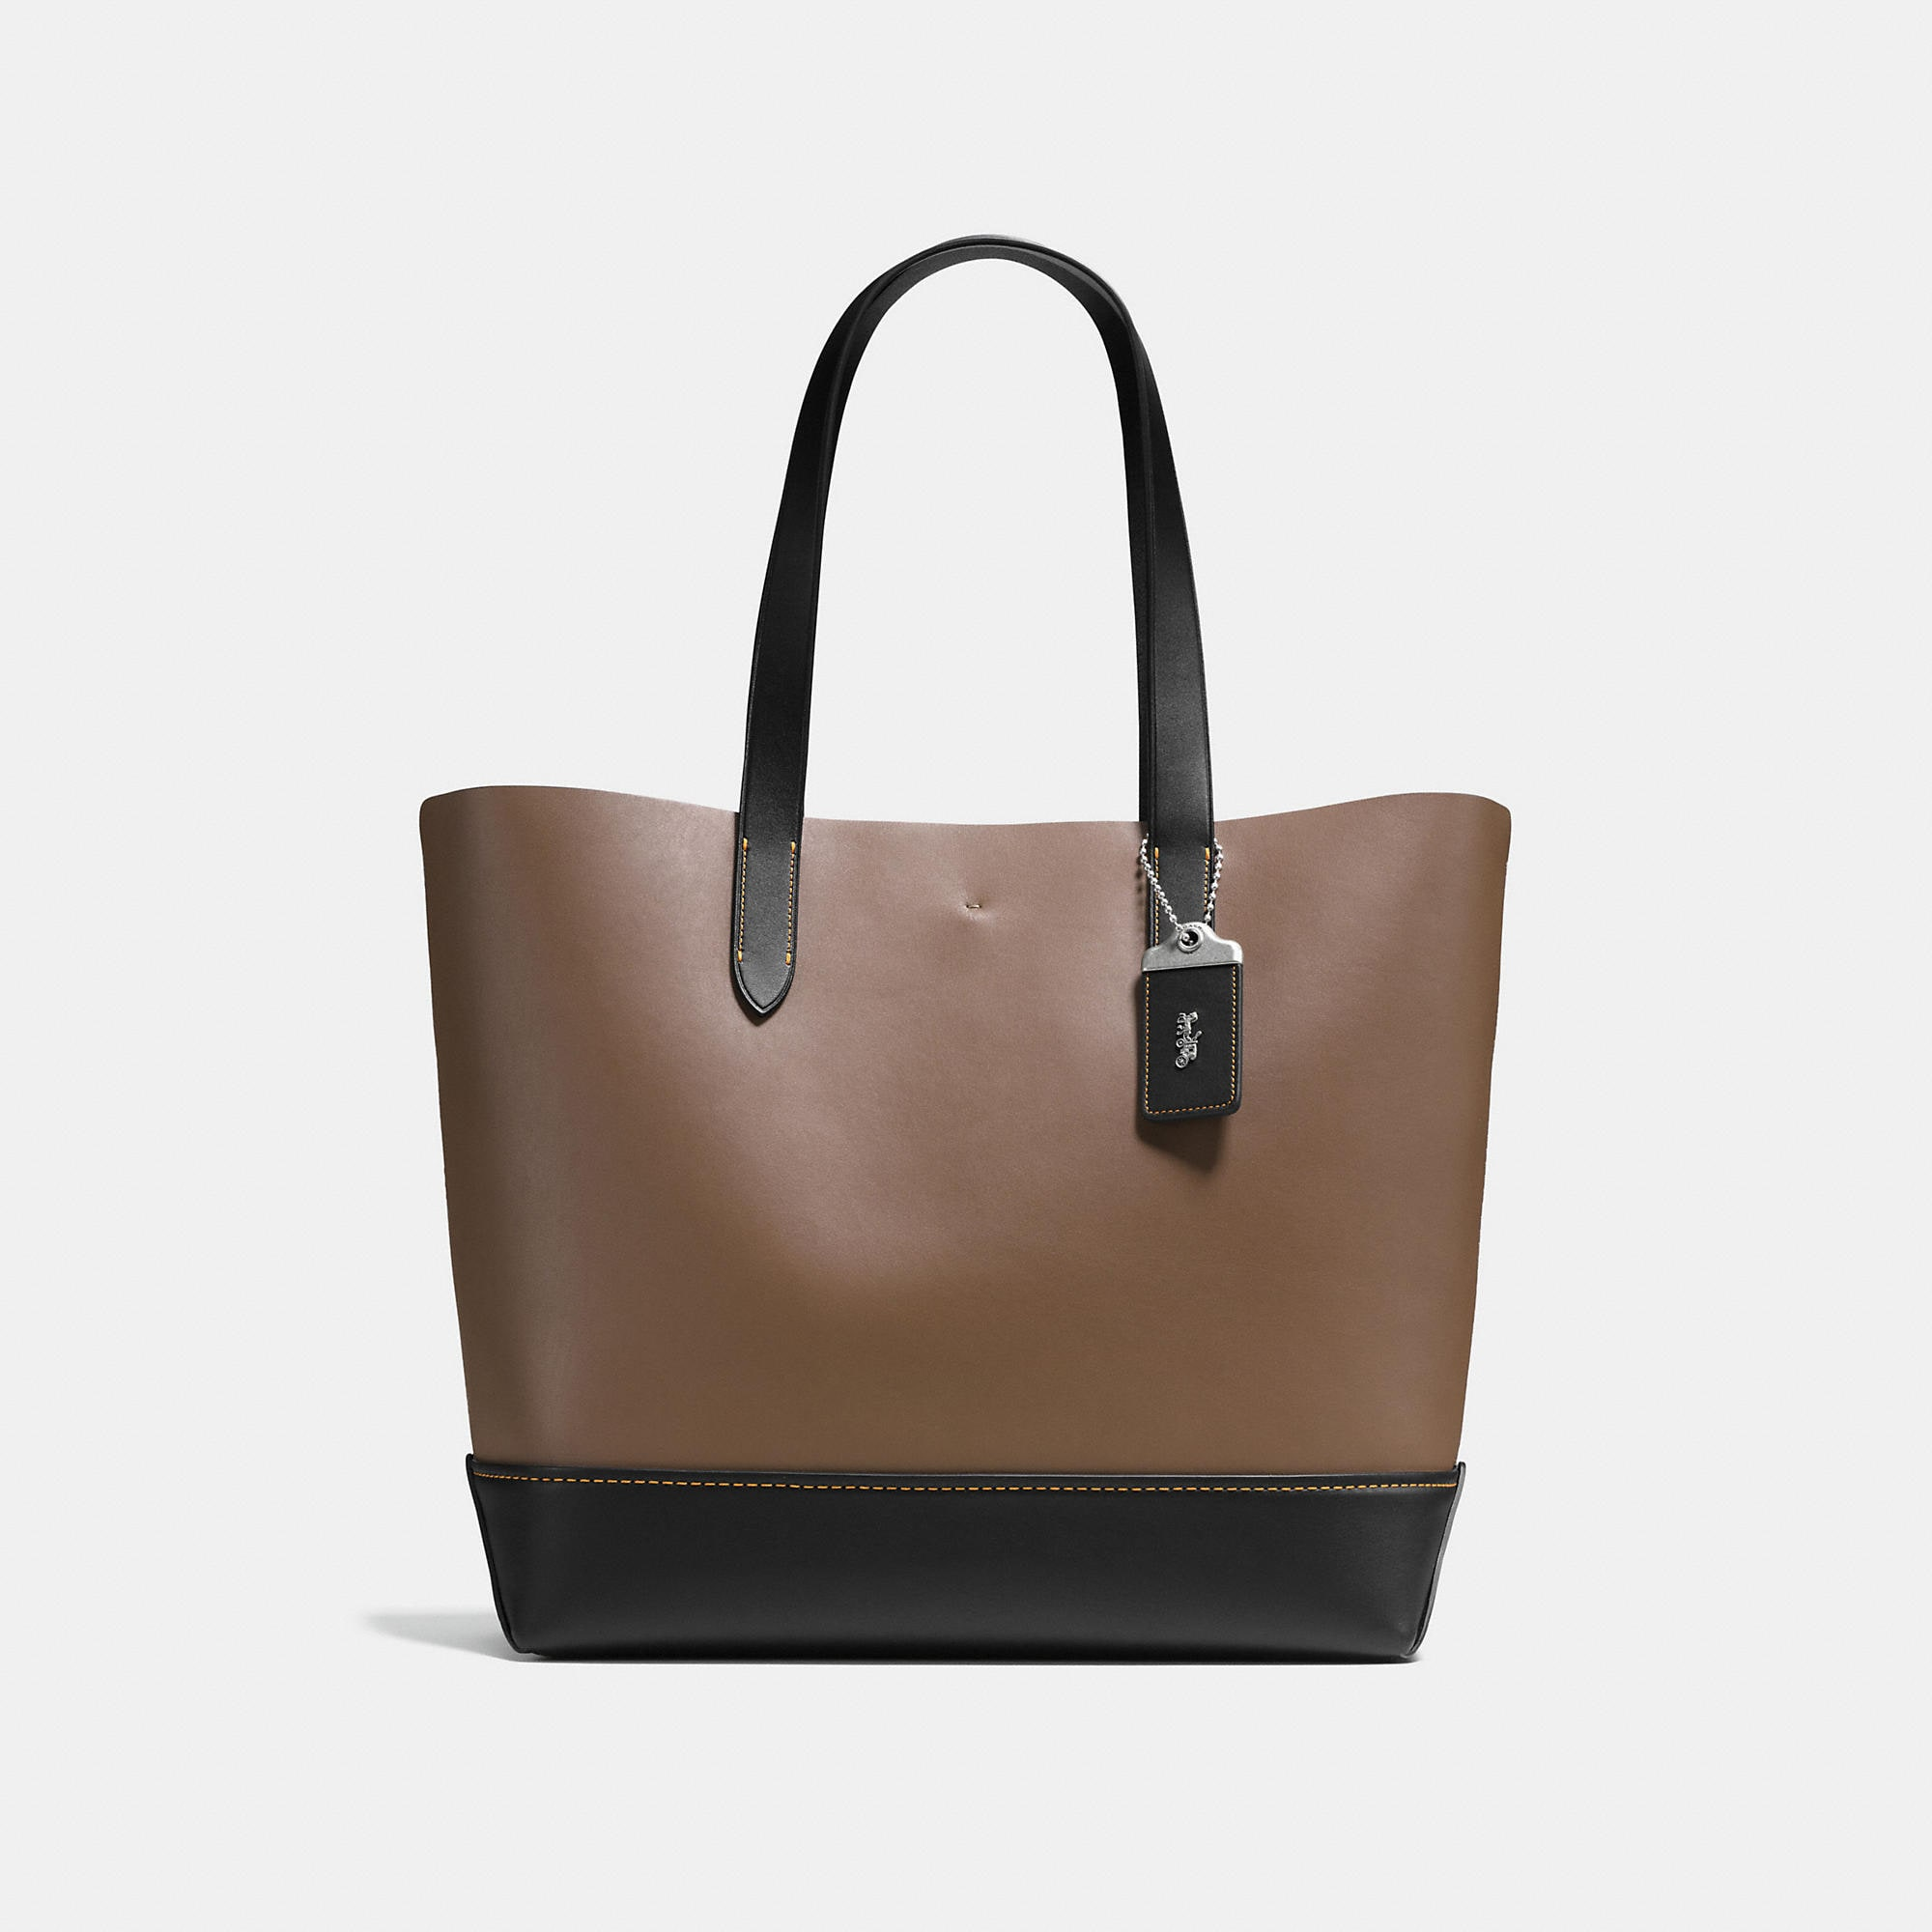 Coach Gotham Tote In Glove Calf Leather